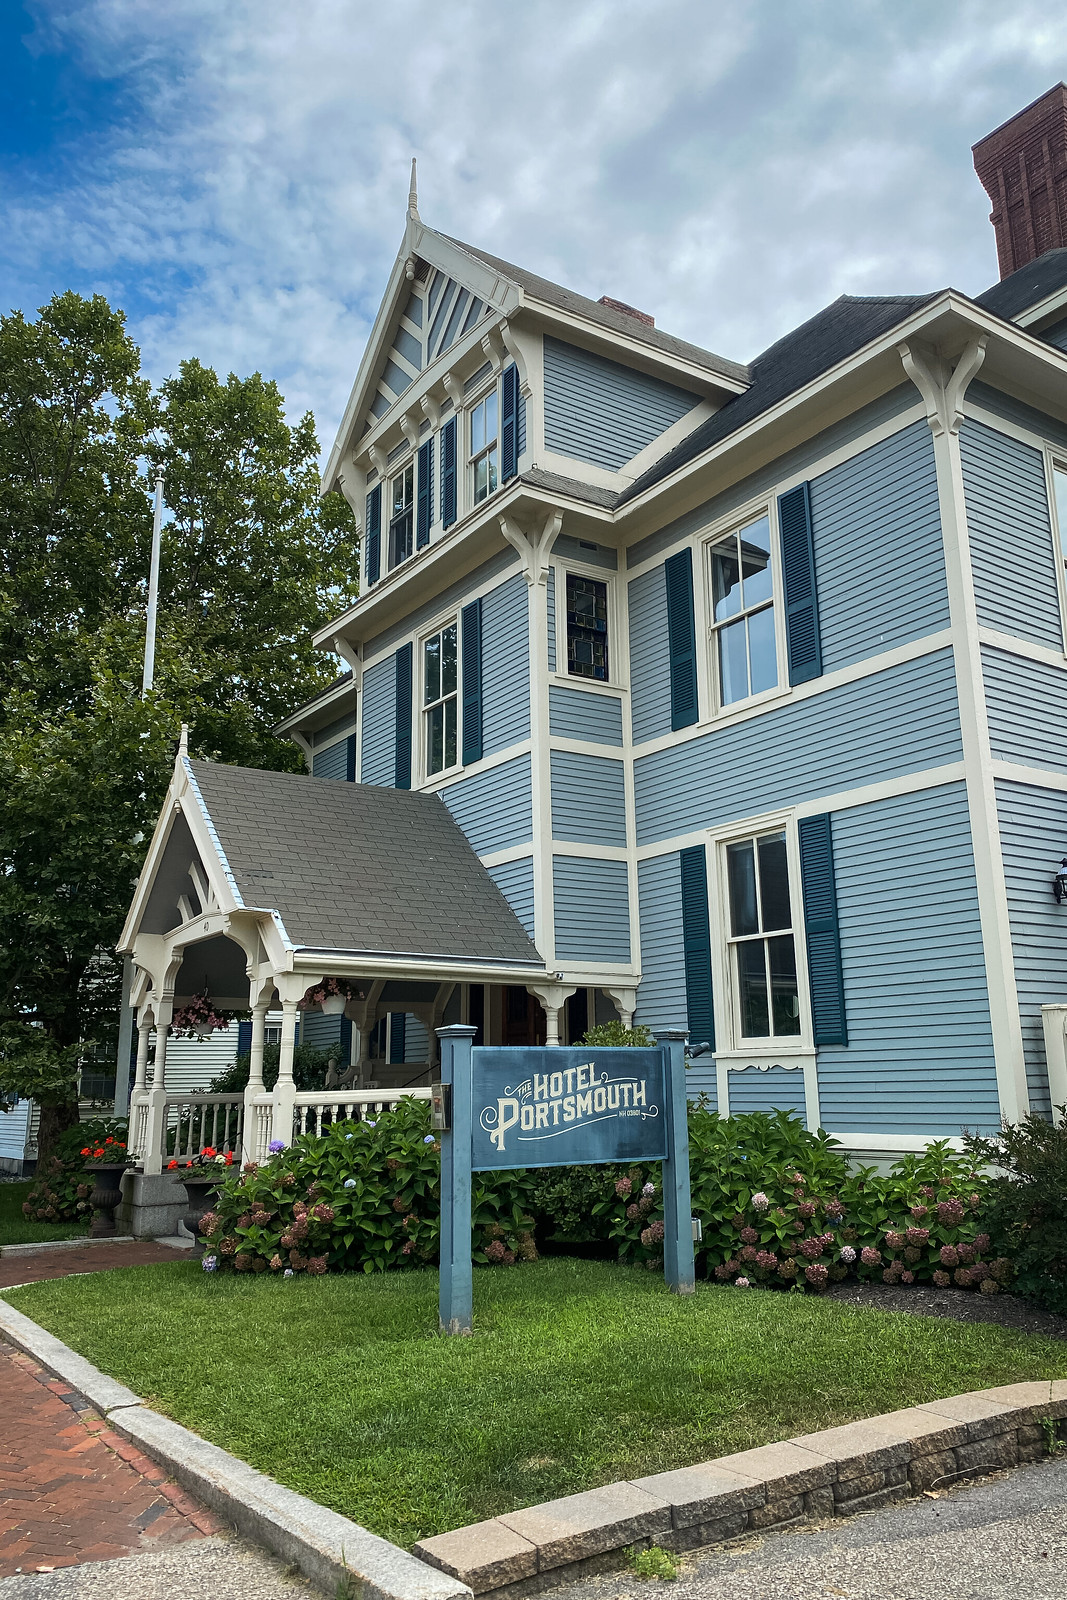 The Hotel Portsmouth | Where to stay in Portsmouth, NH | Portsmouth New Hampshire Travel Guide | Weekend in New England | Things to do in Portsmouth